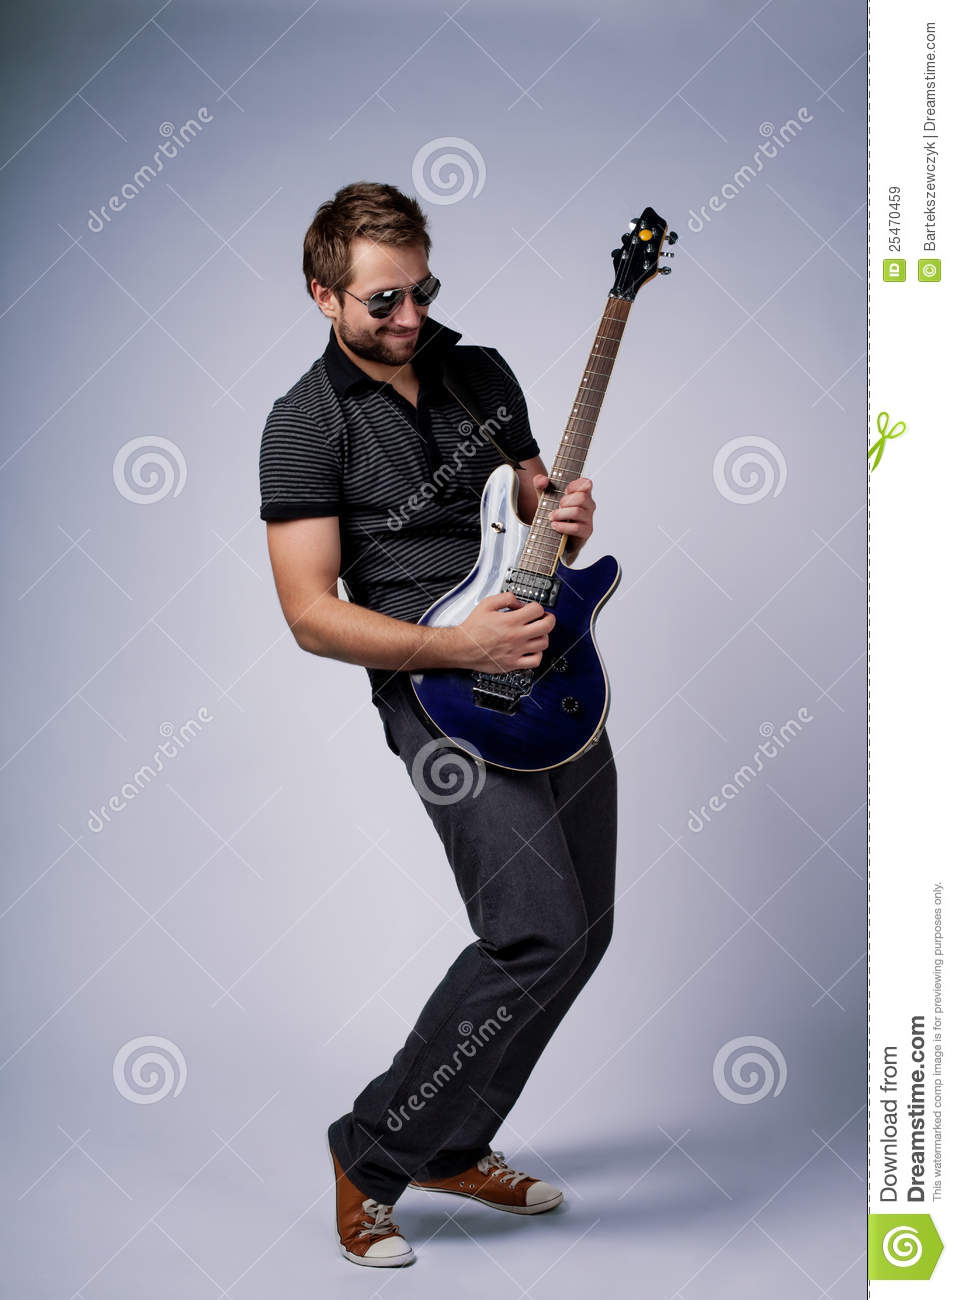 Rockstar Guitar Player Royalty Free Stock Images - Image: 25470459